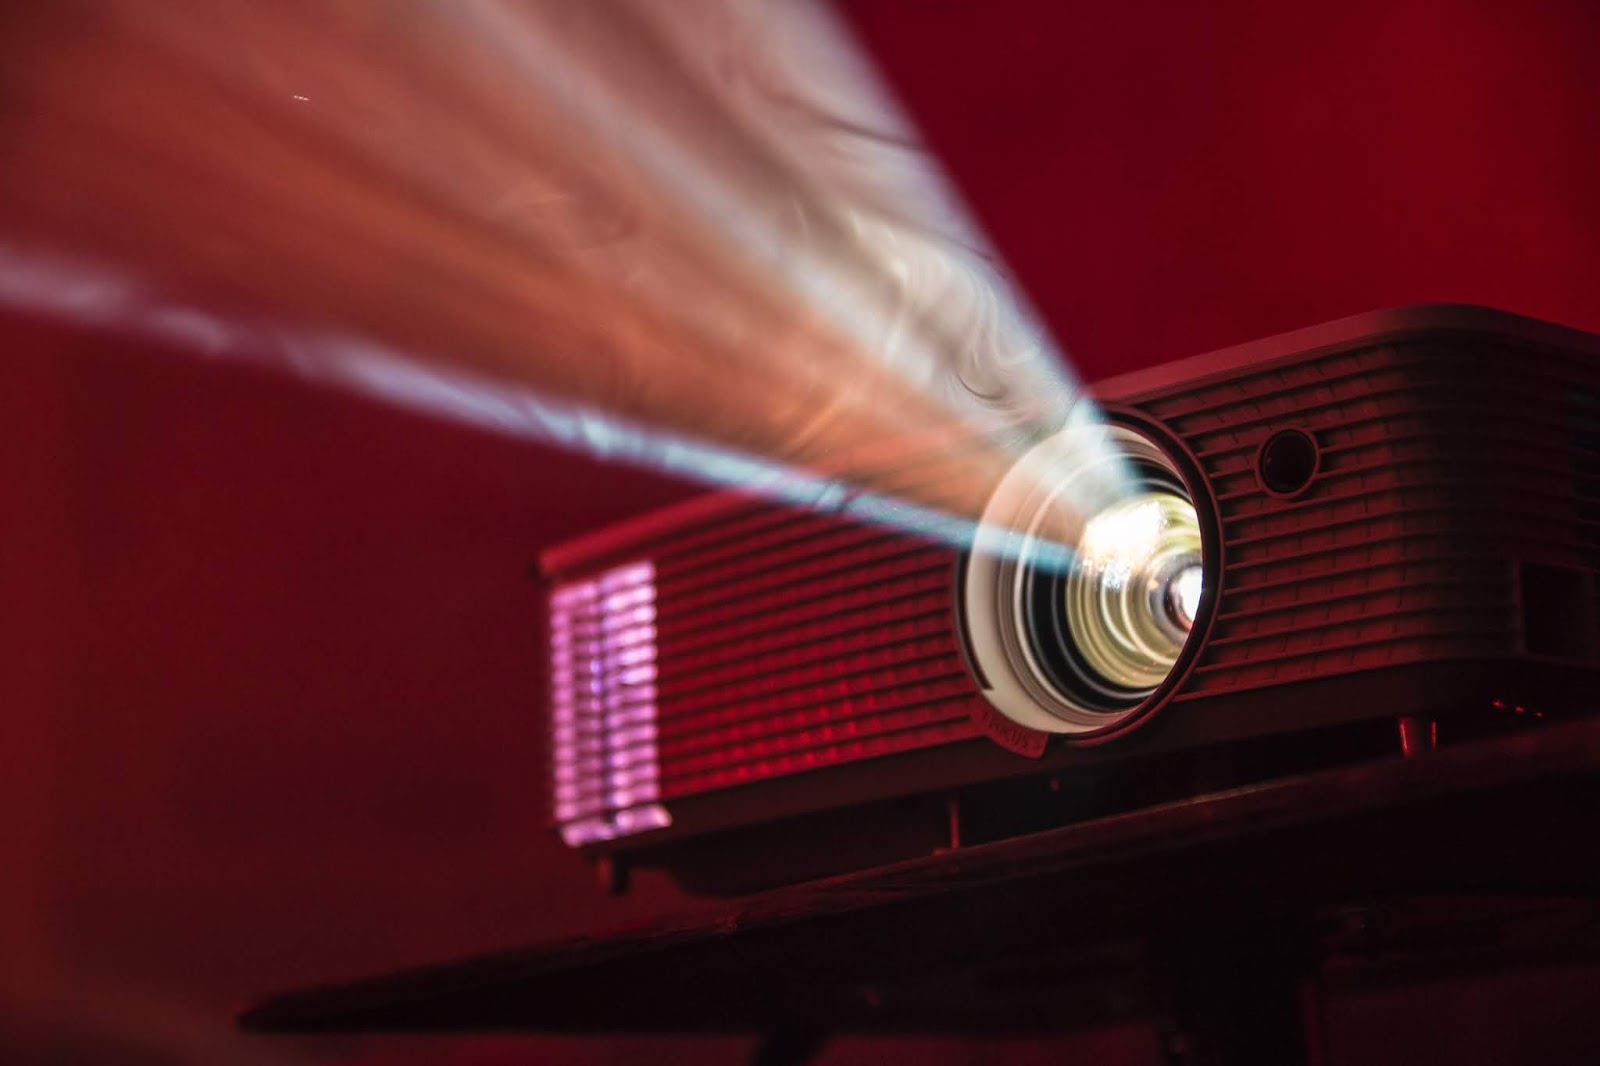 a portable video projector with light coming out of lense for blog post about movies darkest hour and 12 strong